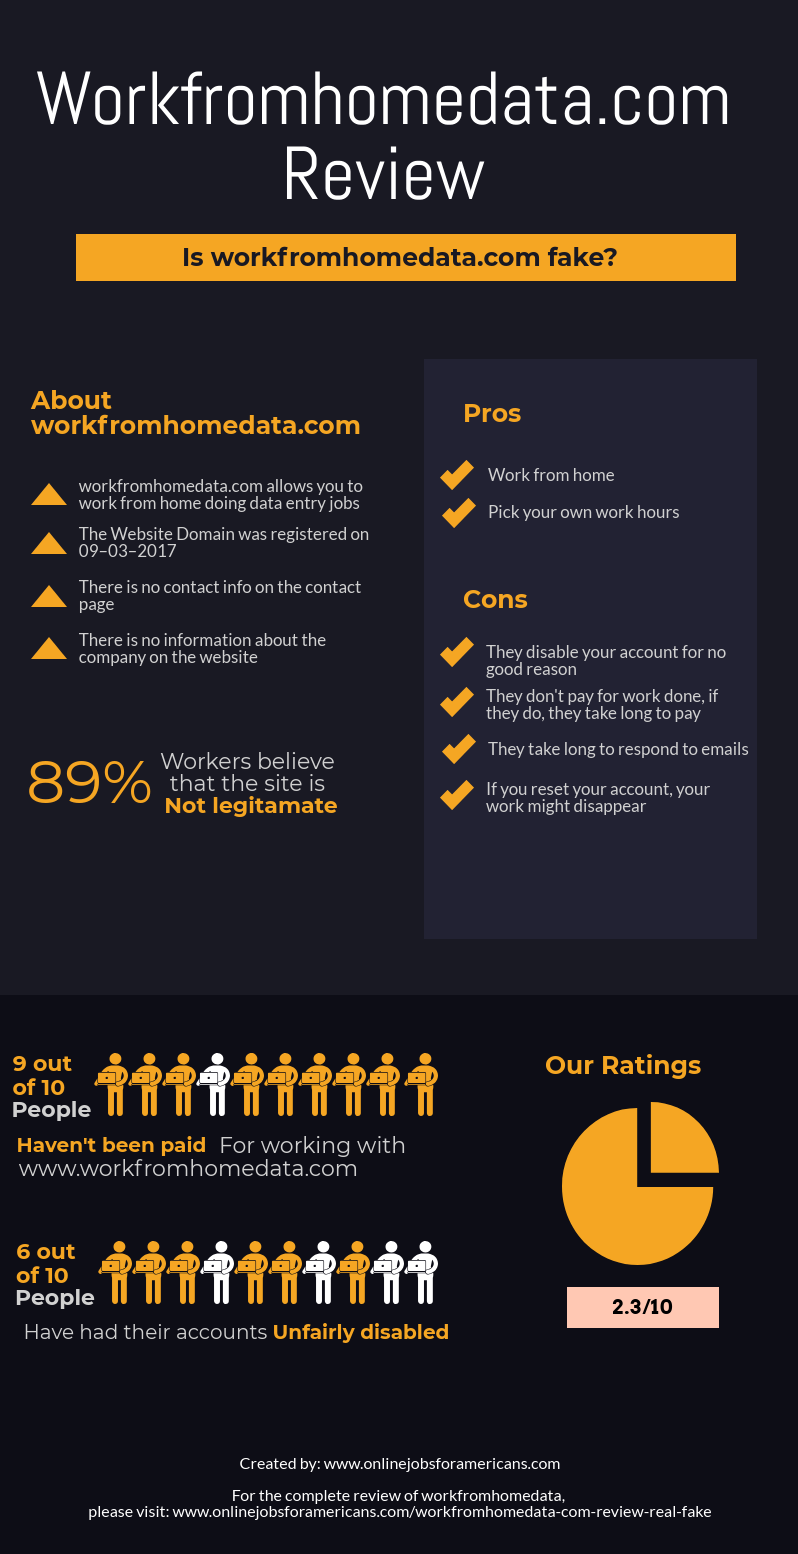 workfromhomedata.com infographic